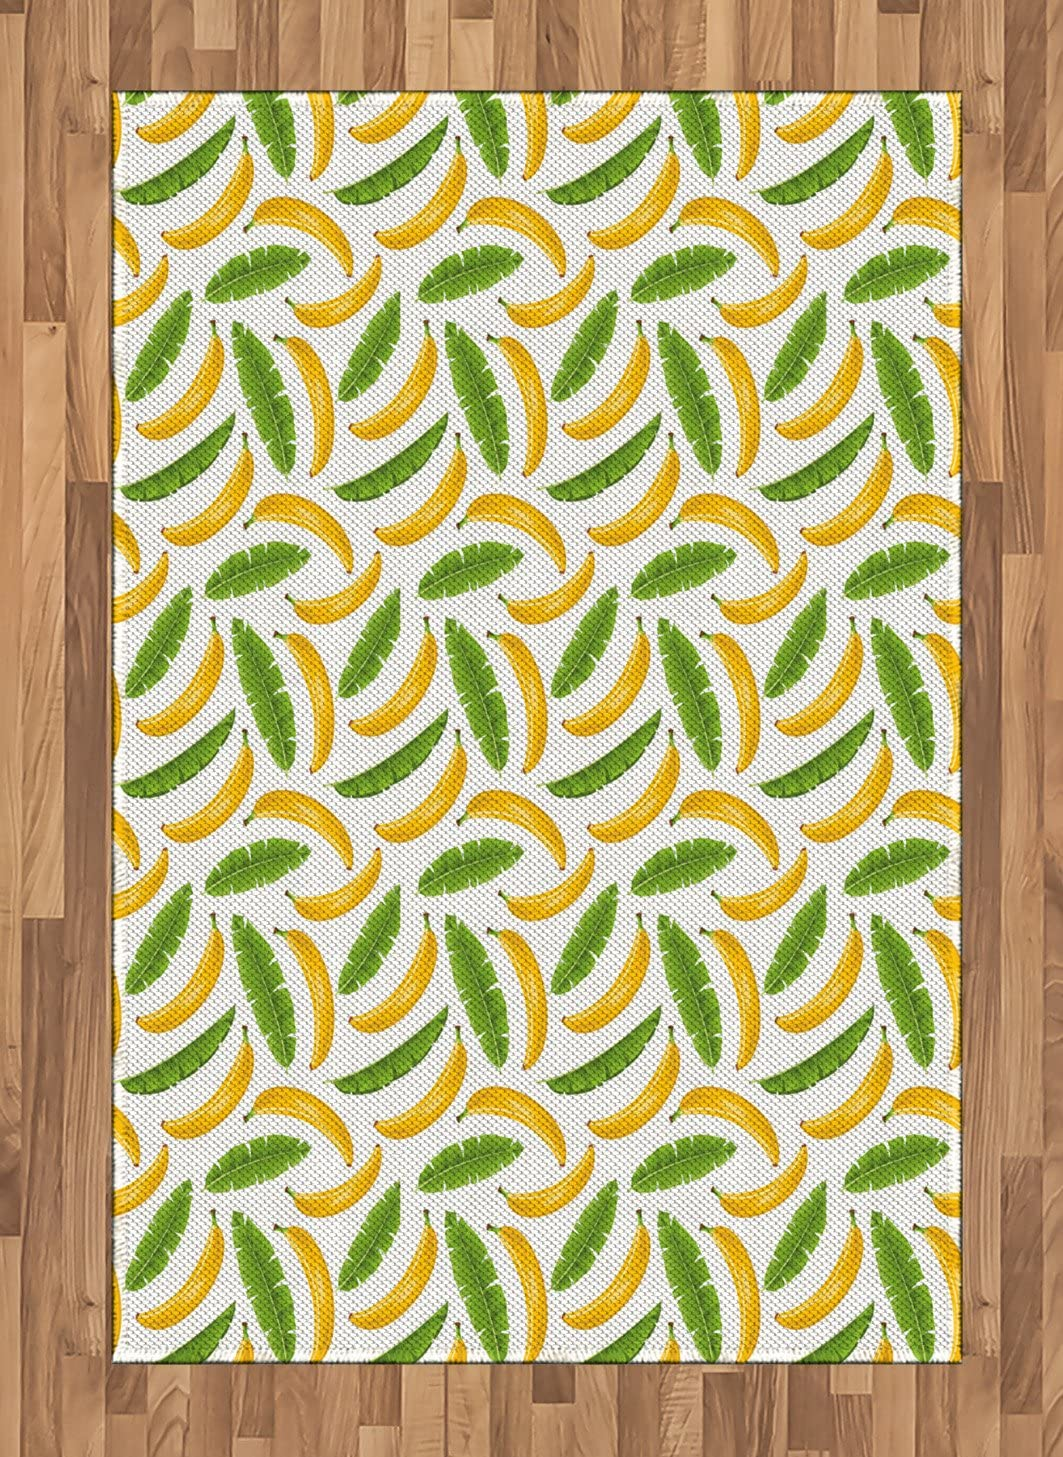 Ambesonne Playroom Area Rug, Banana Leaves Yummy Tropical Fruit Vacation Climate Kids Print, Flat Woven Accent Rug for Living Room Bedroom Dining Room, 4' X 5.7', Fern Green Yellow